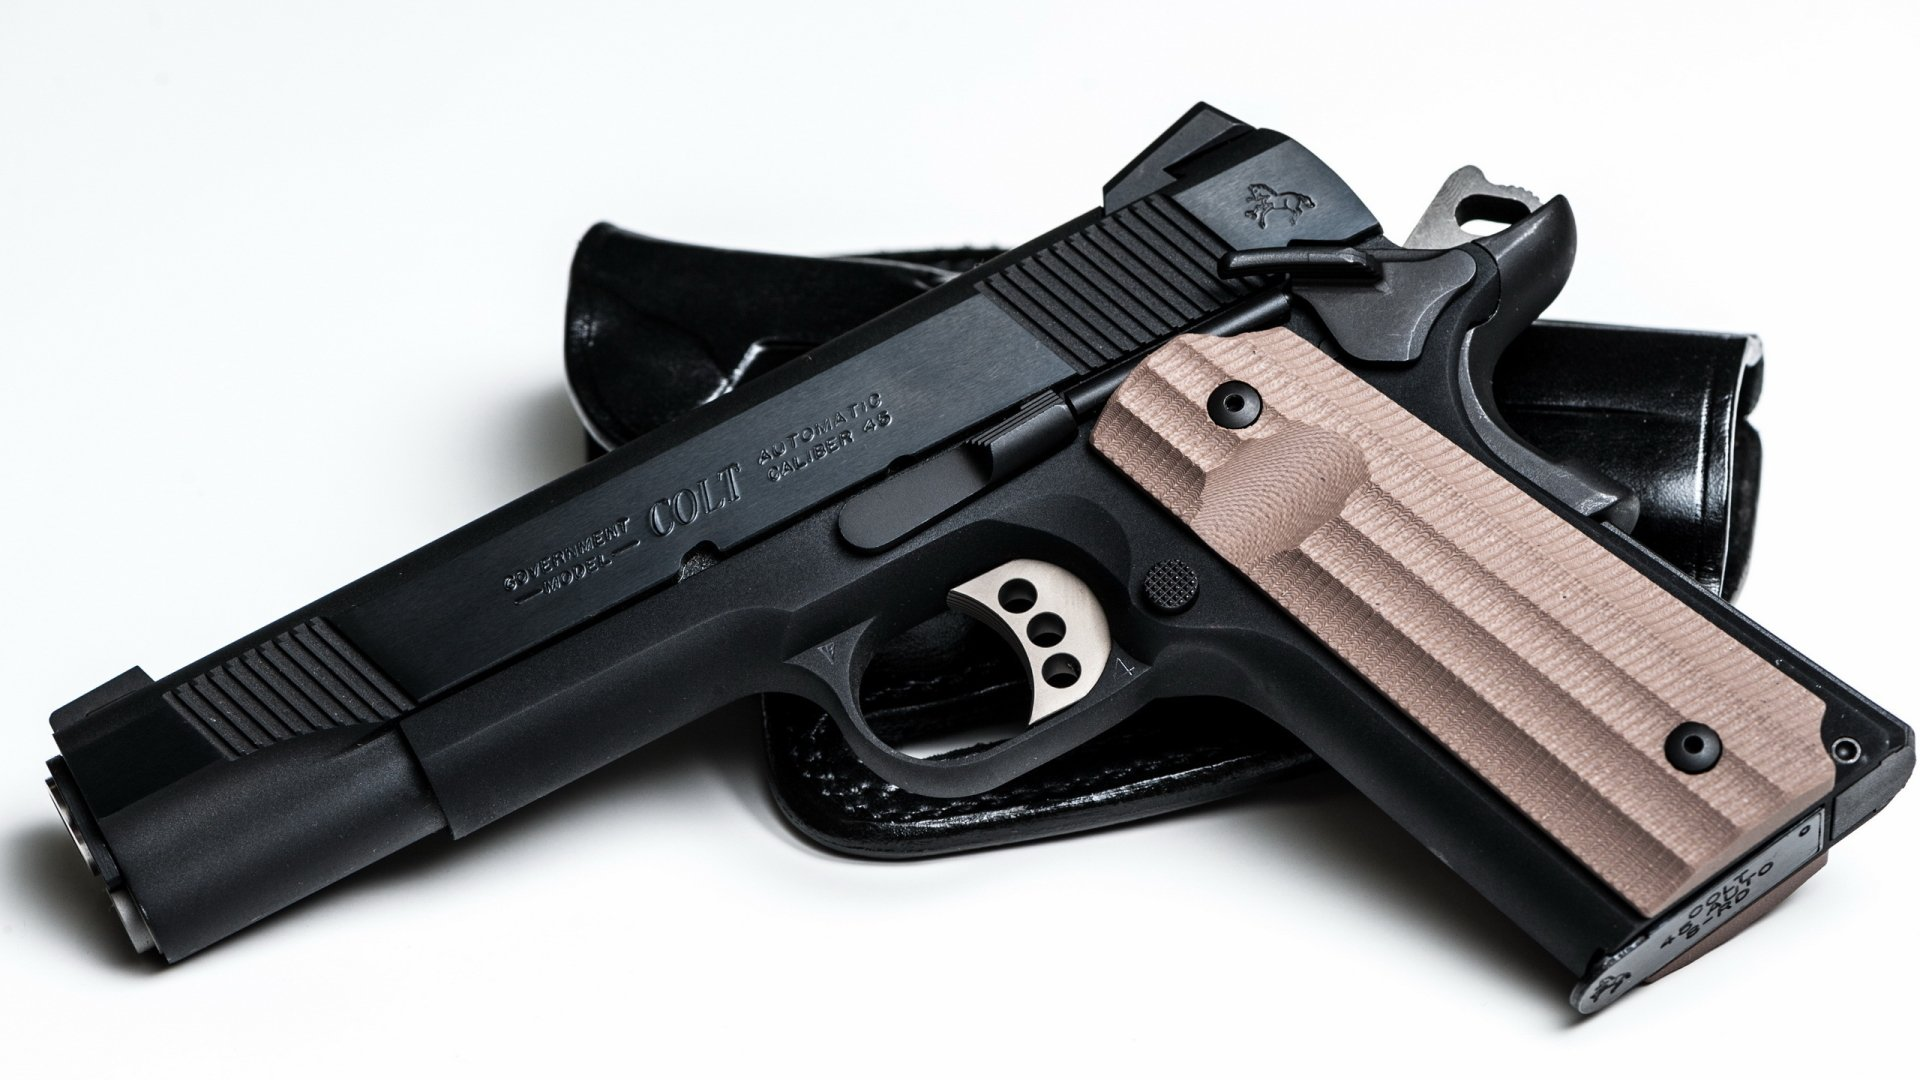 Weapons - Colt 1911  Pistol Weapon Wallpaper